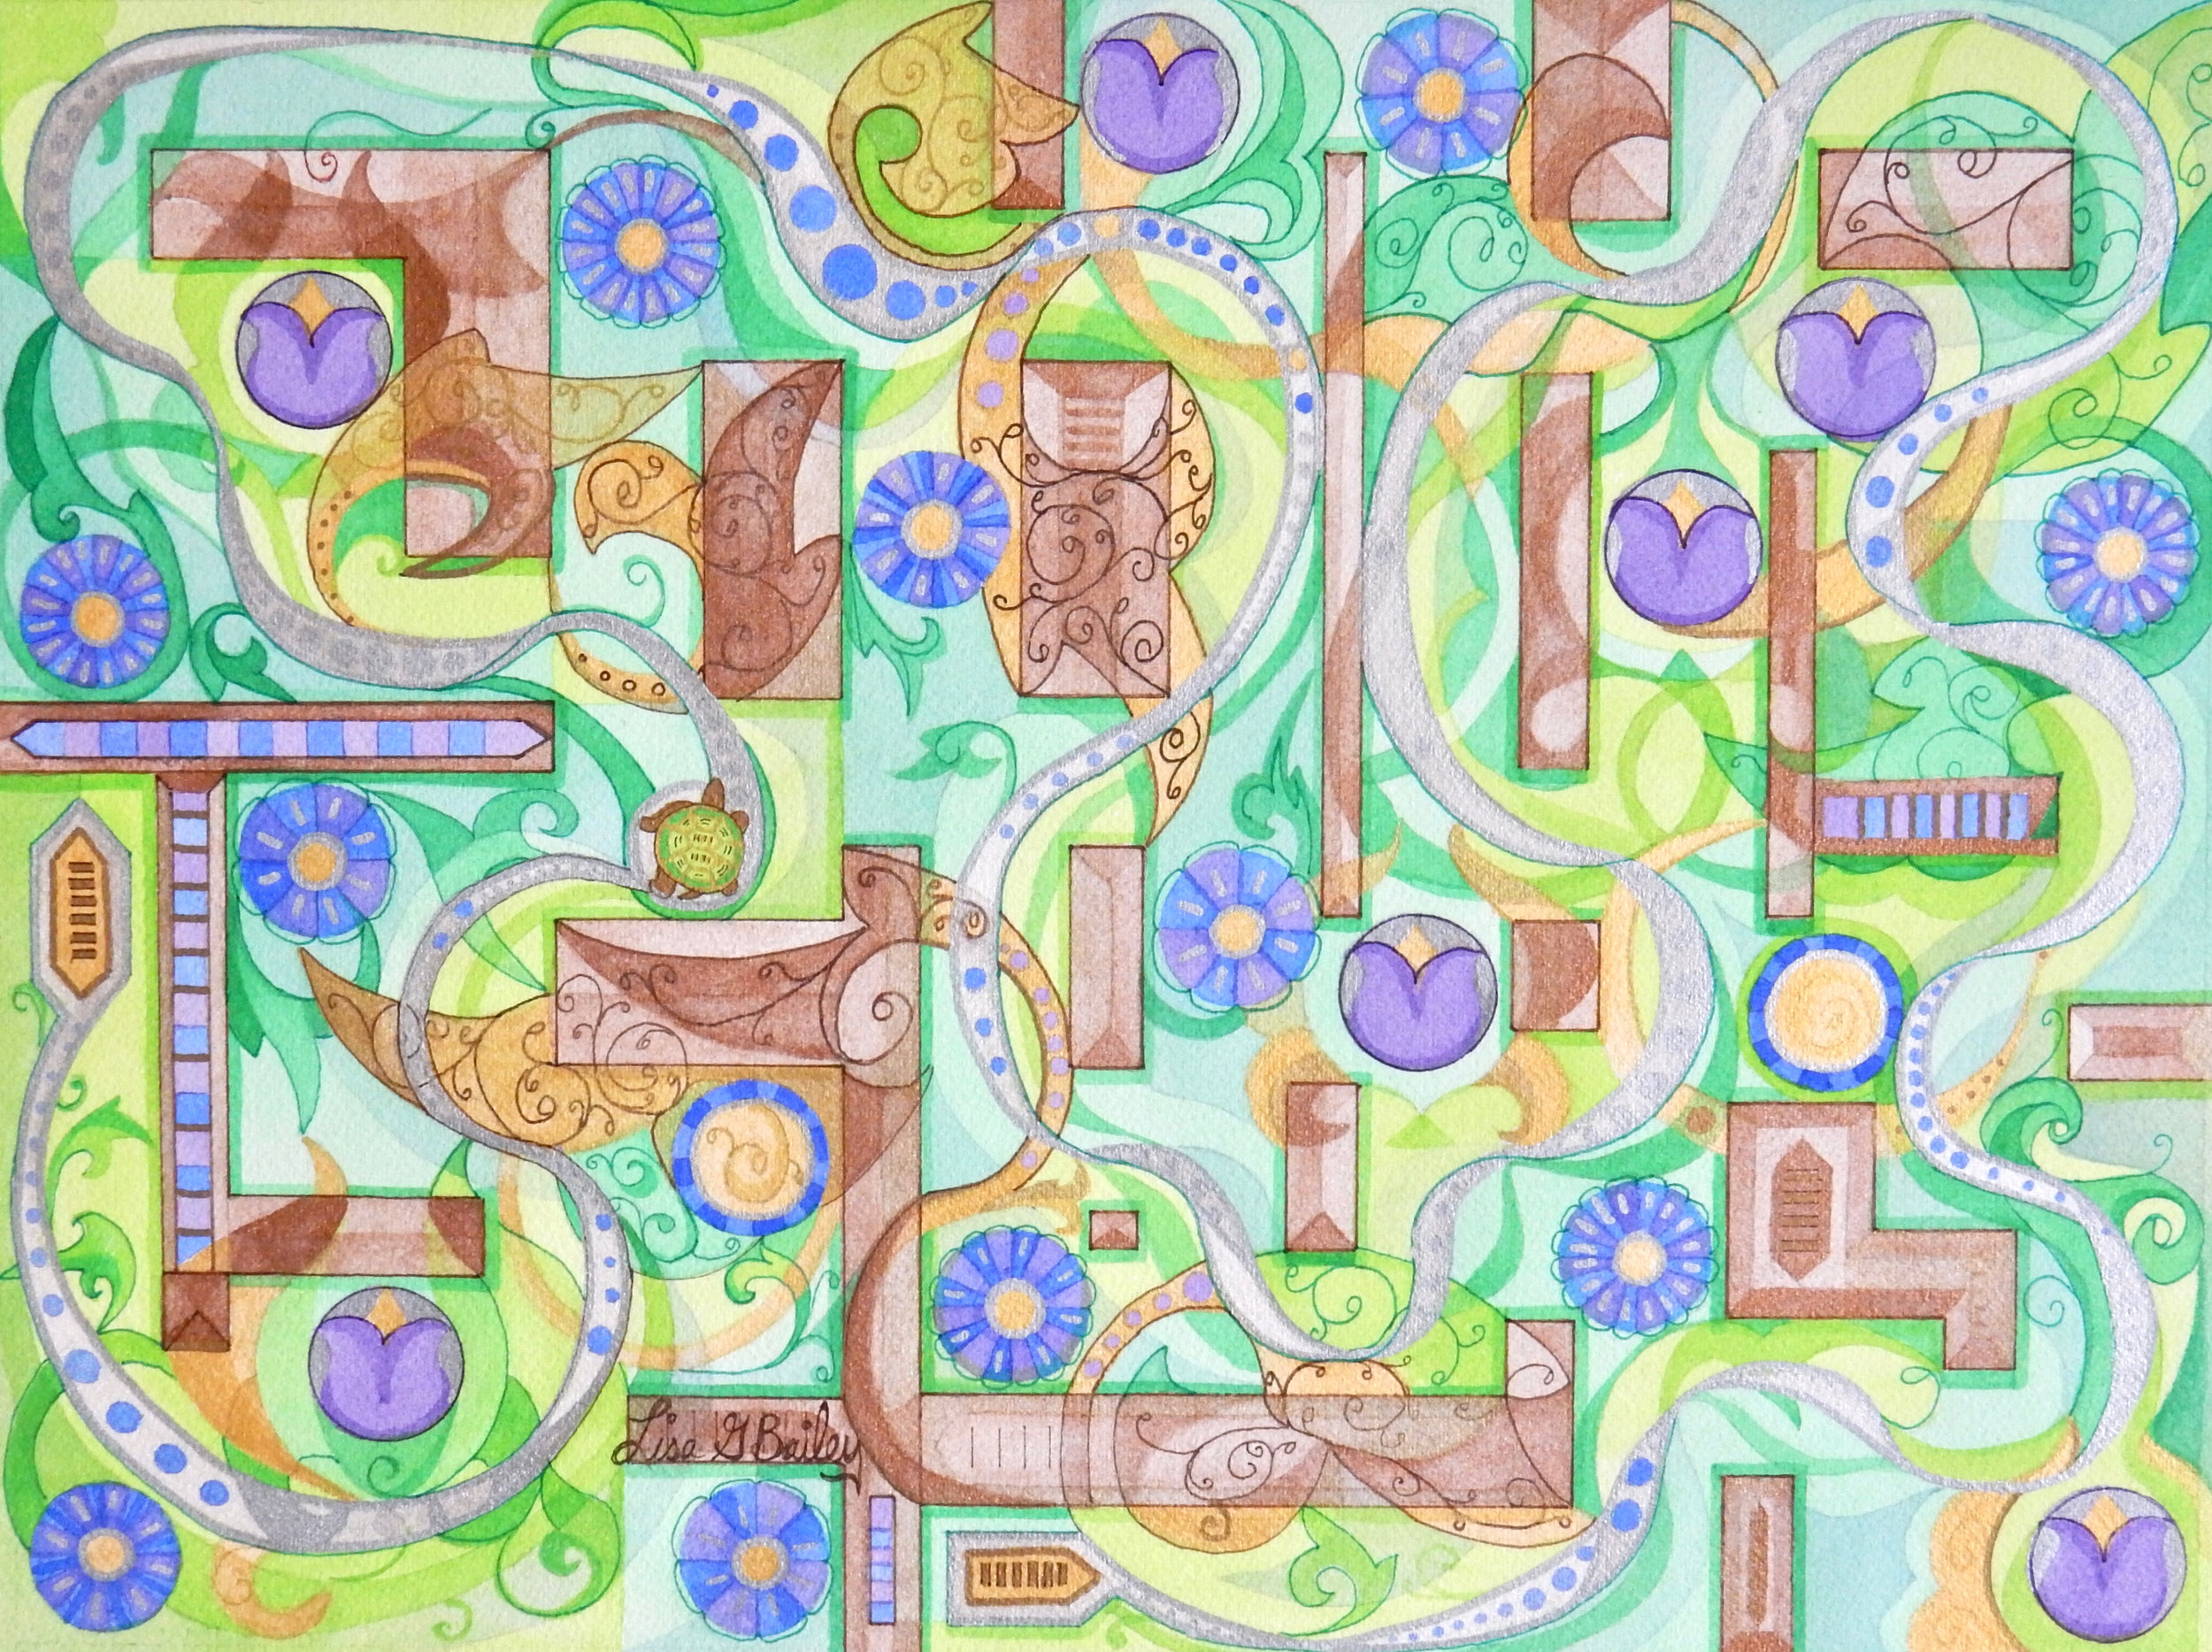 Lisa G Bailey. watercolor and pen. 'Labyrinth'